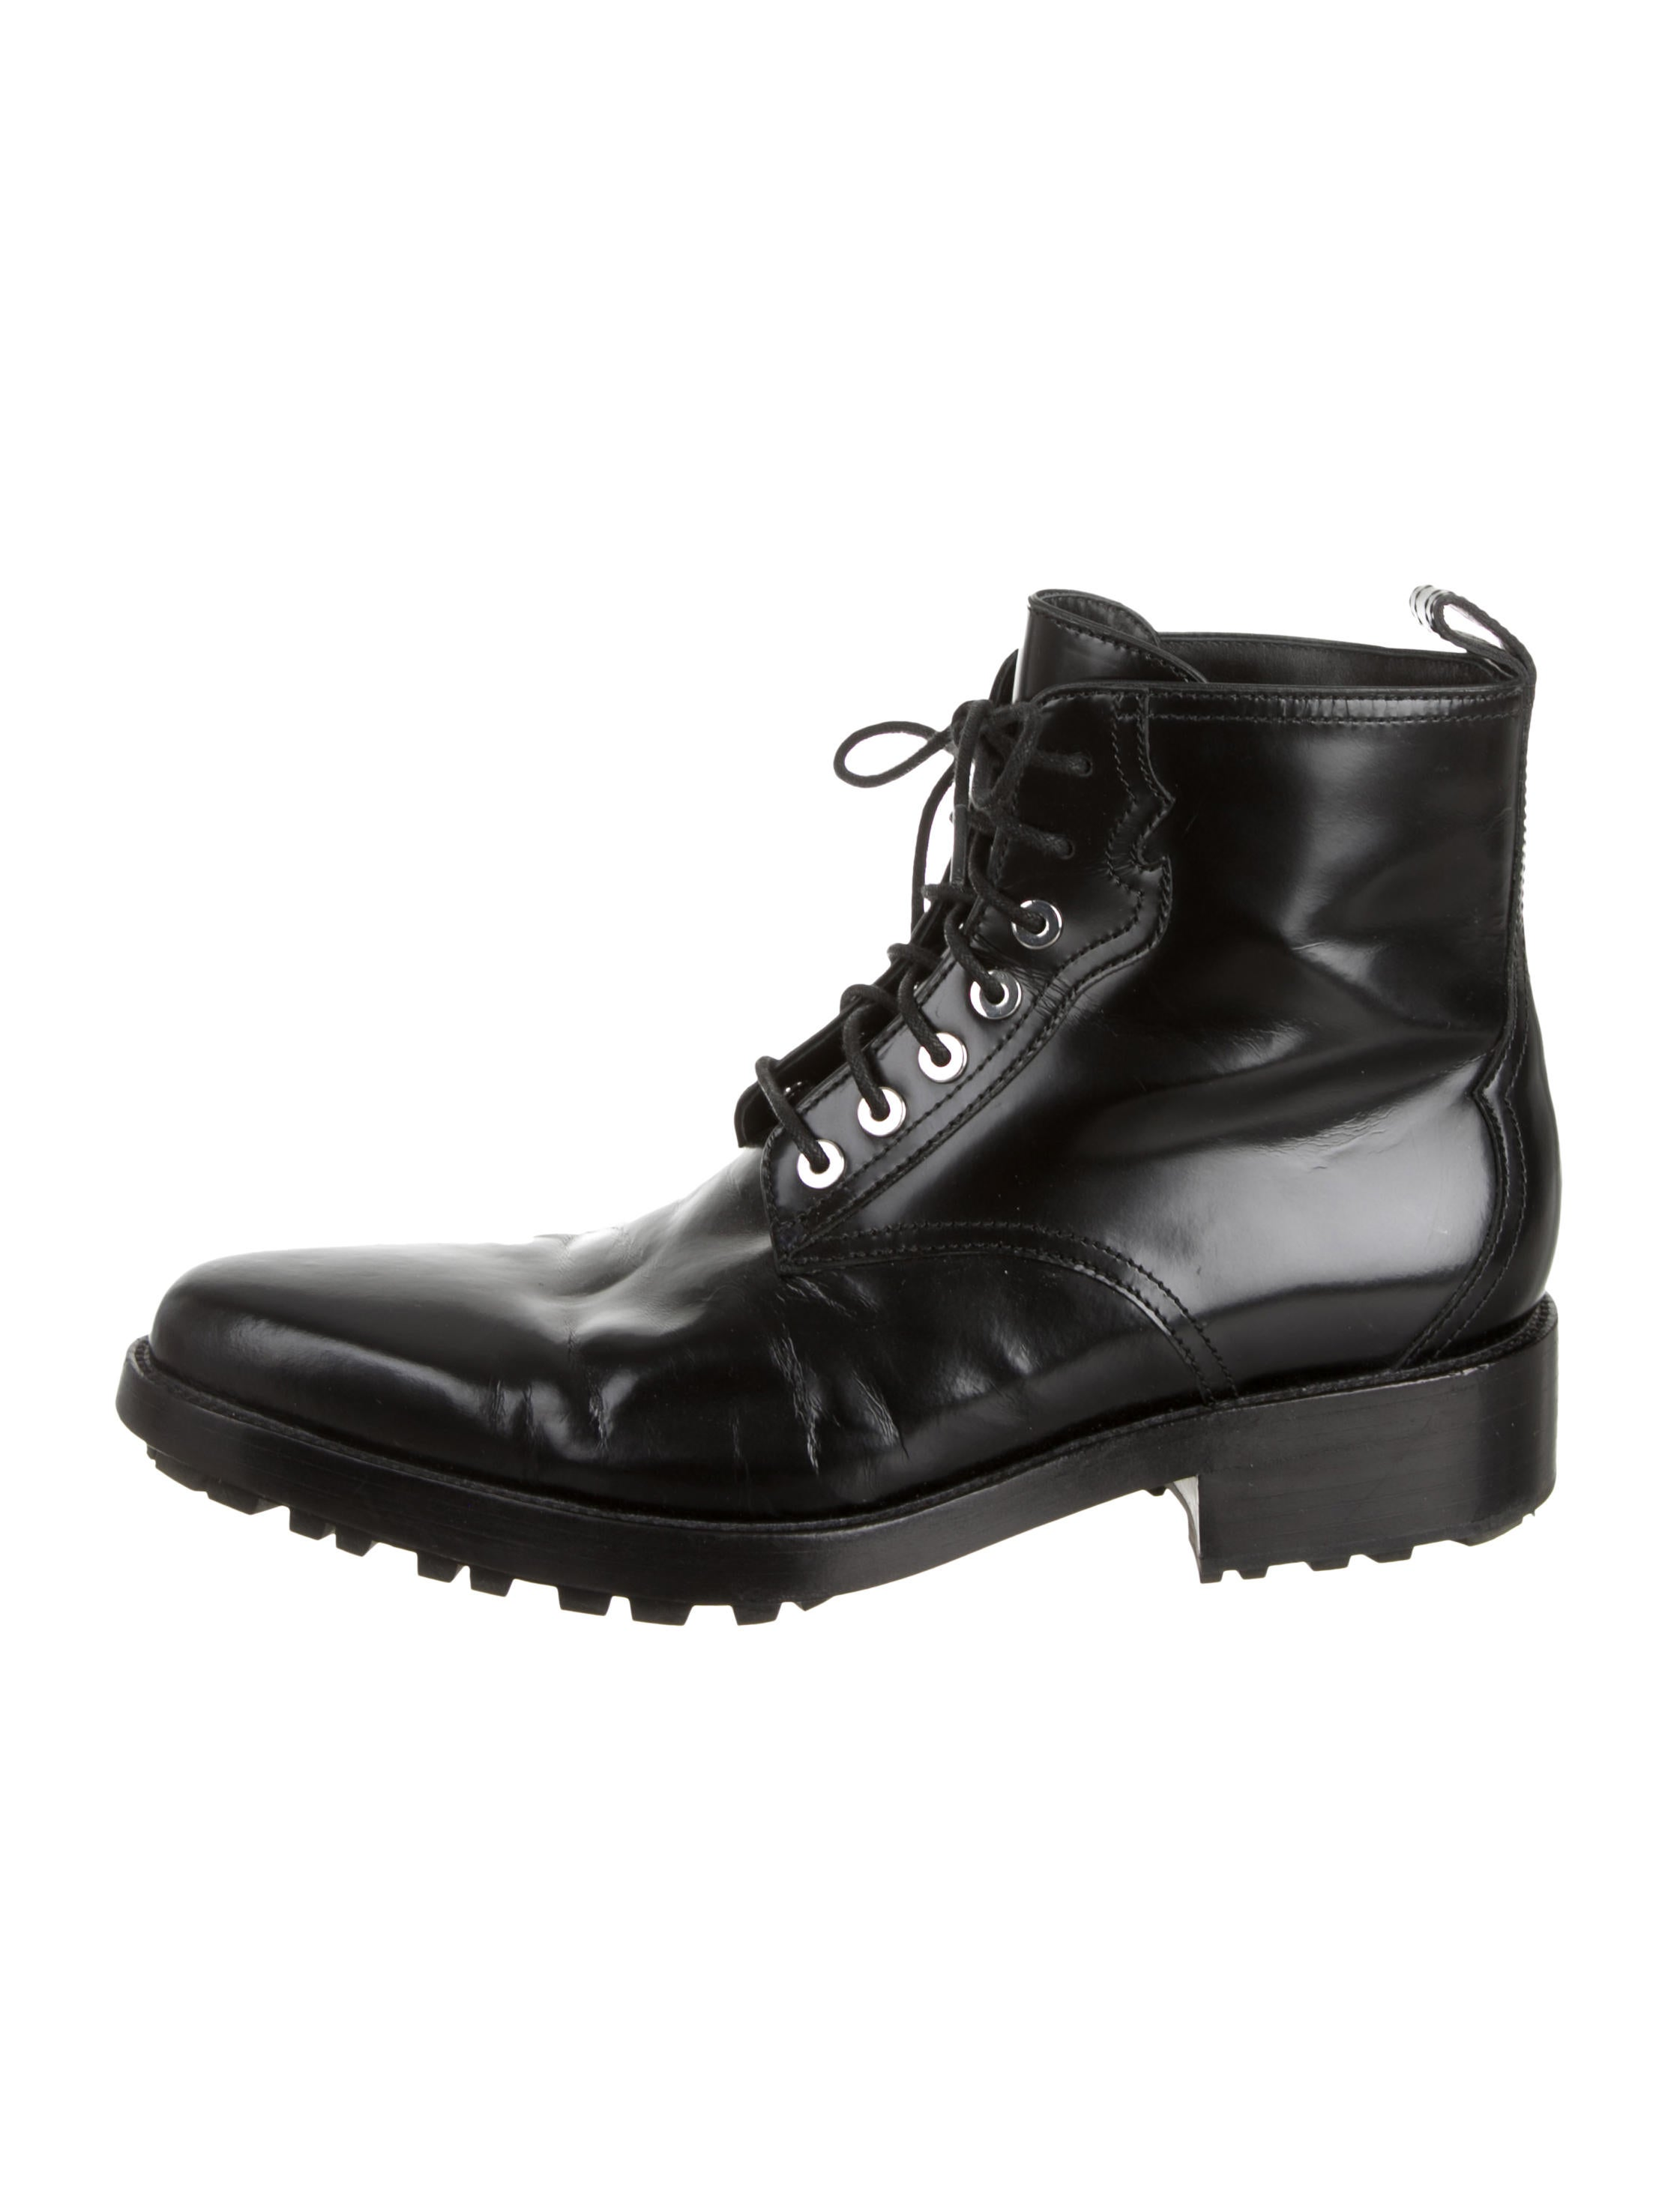 3 1 phillip lim leather lace up ankle boots shoes